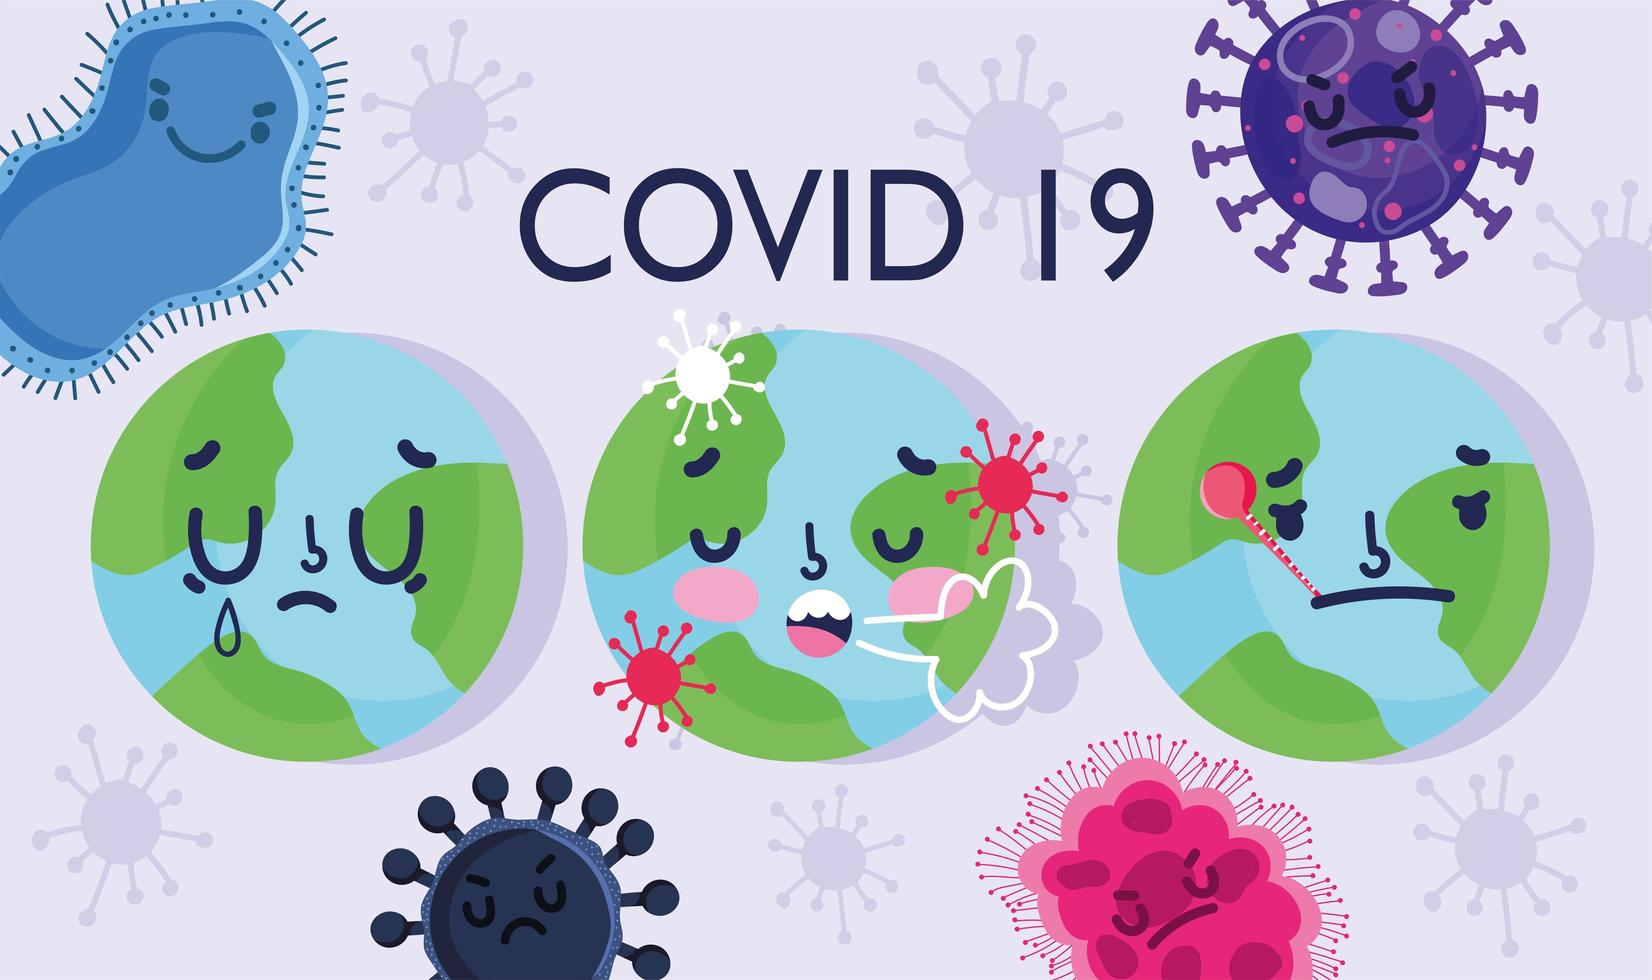 Covid 19 virus pandemic poster design with worlds vector